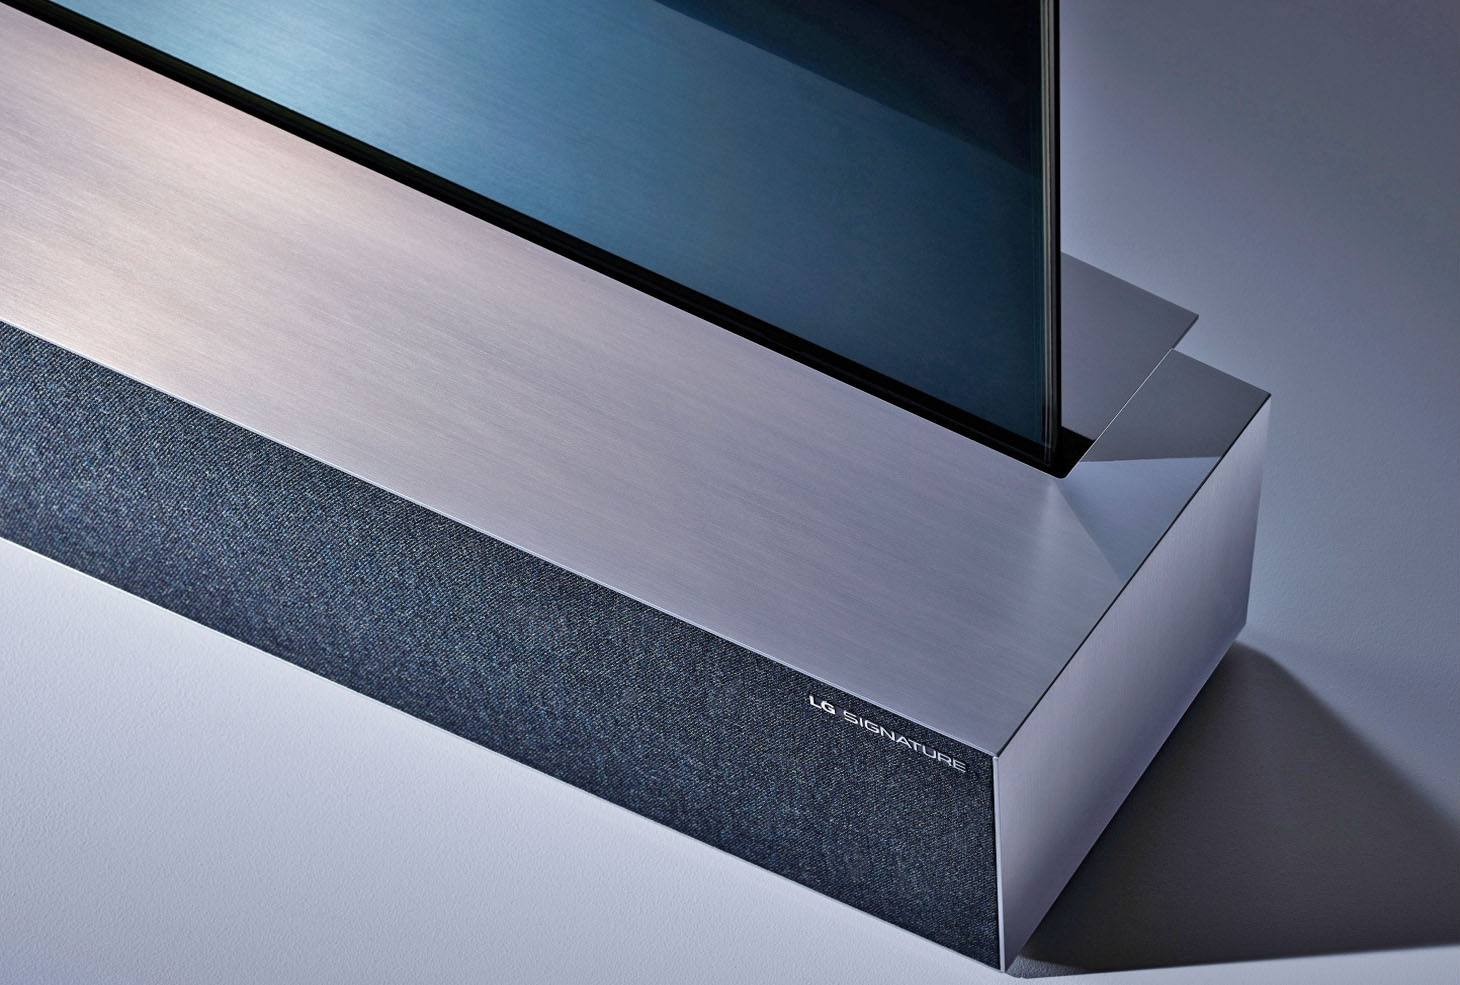 LG Rollable OLED Ultra HD TV - Edge Close-up